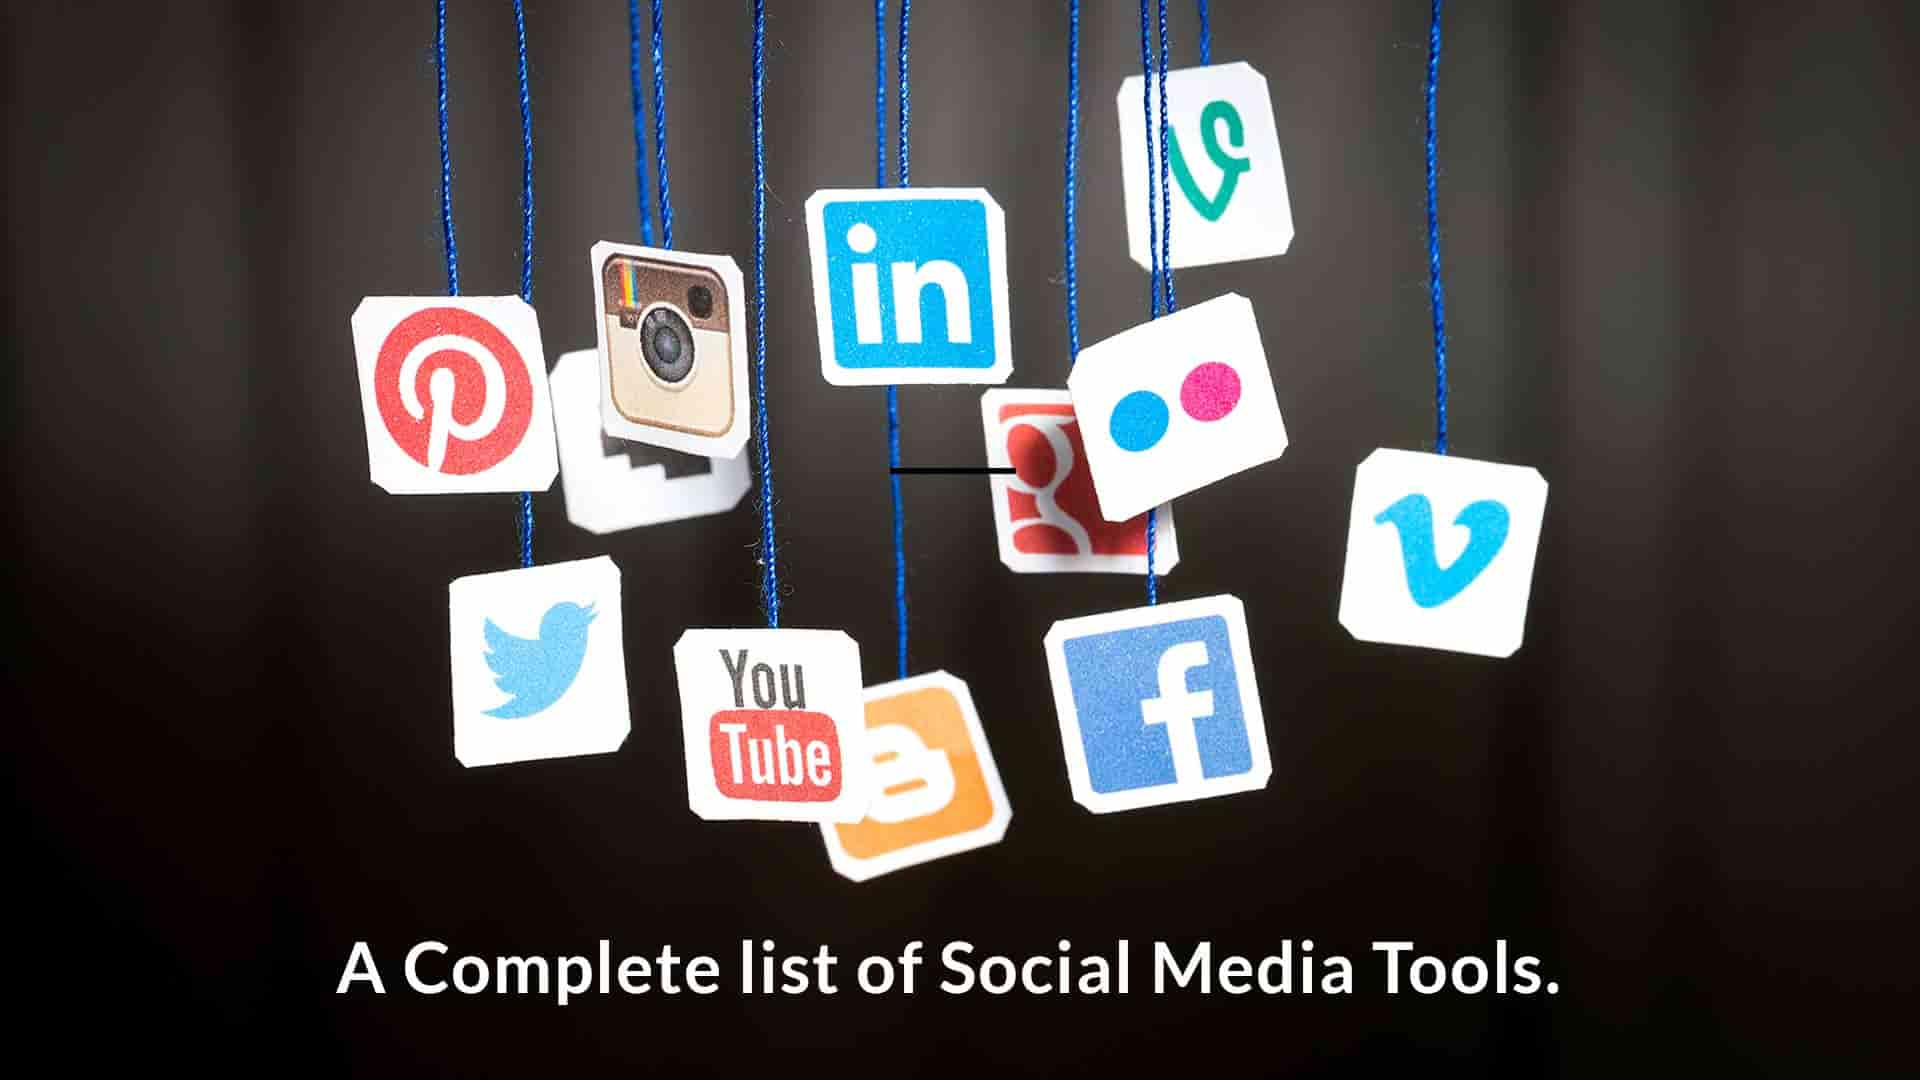 Social Media Tools: The Complete list of Free and Paid tools (2017 Updated)